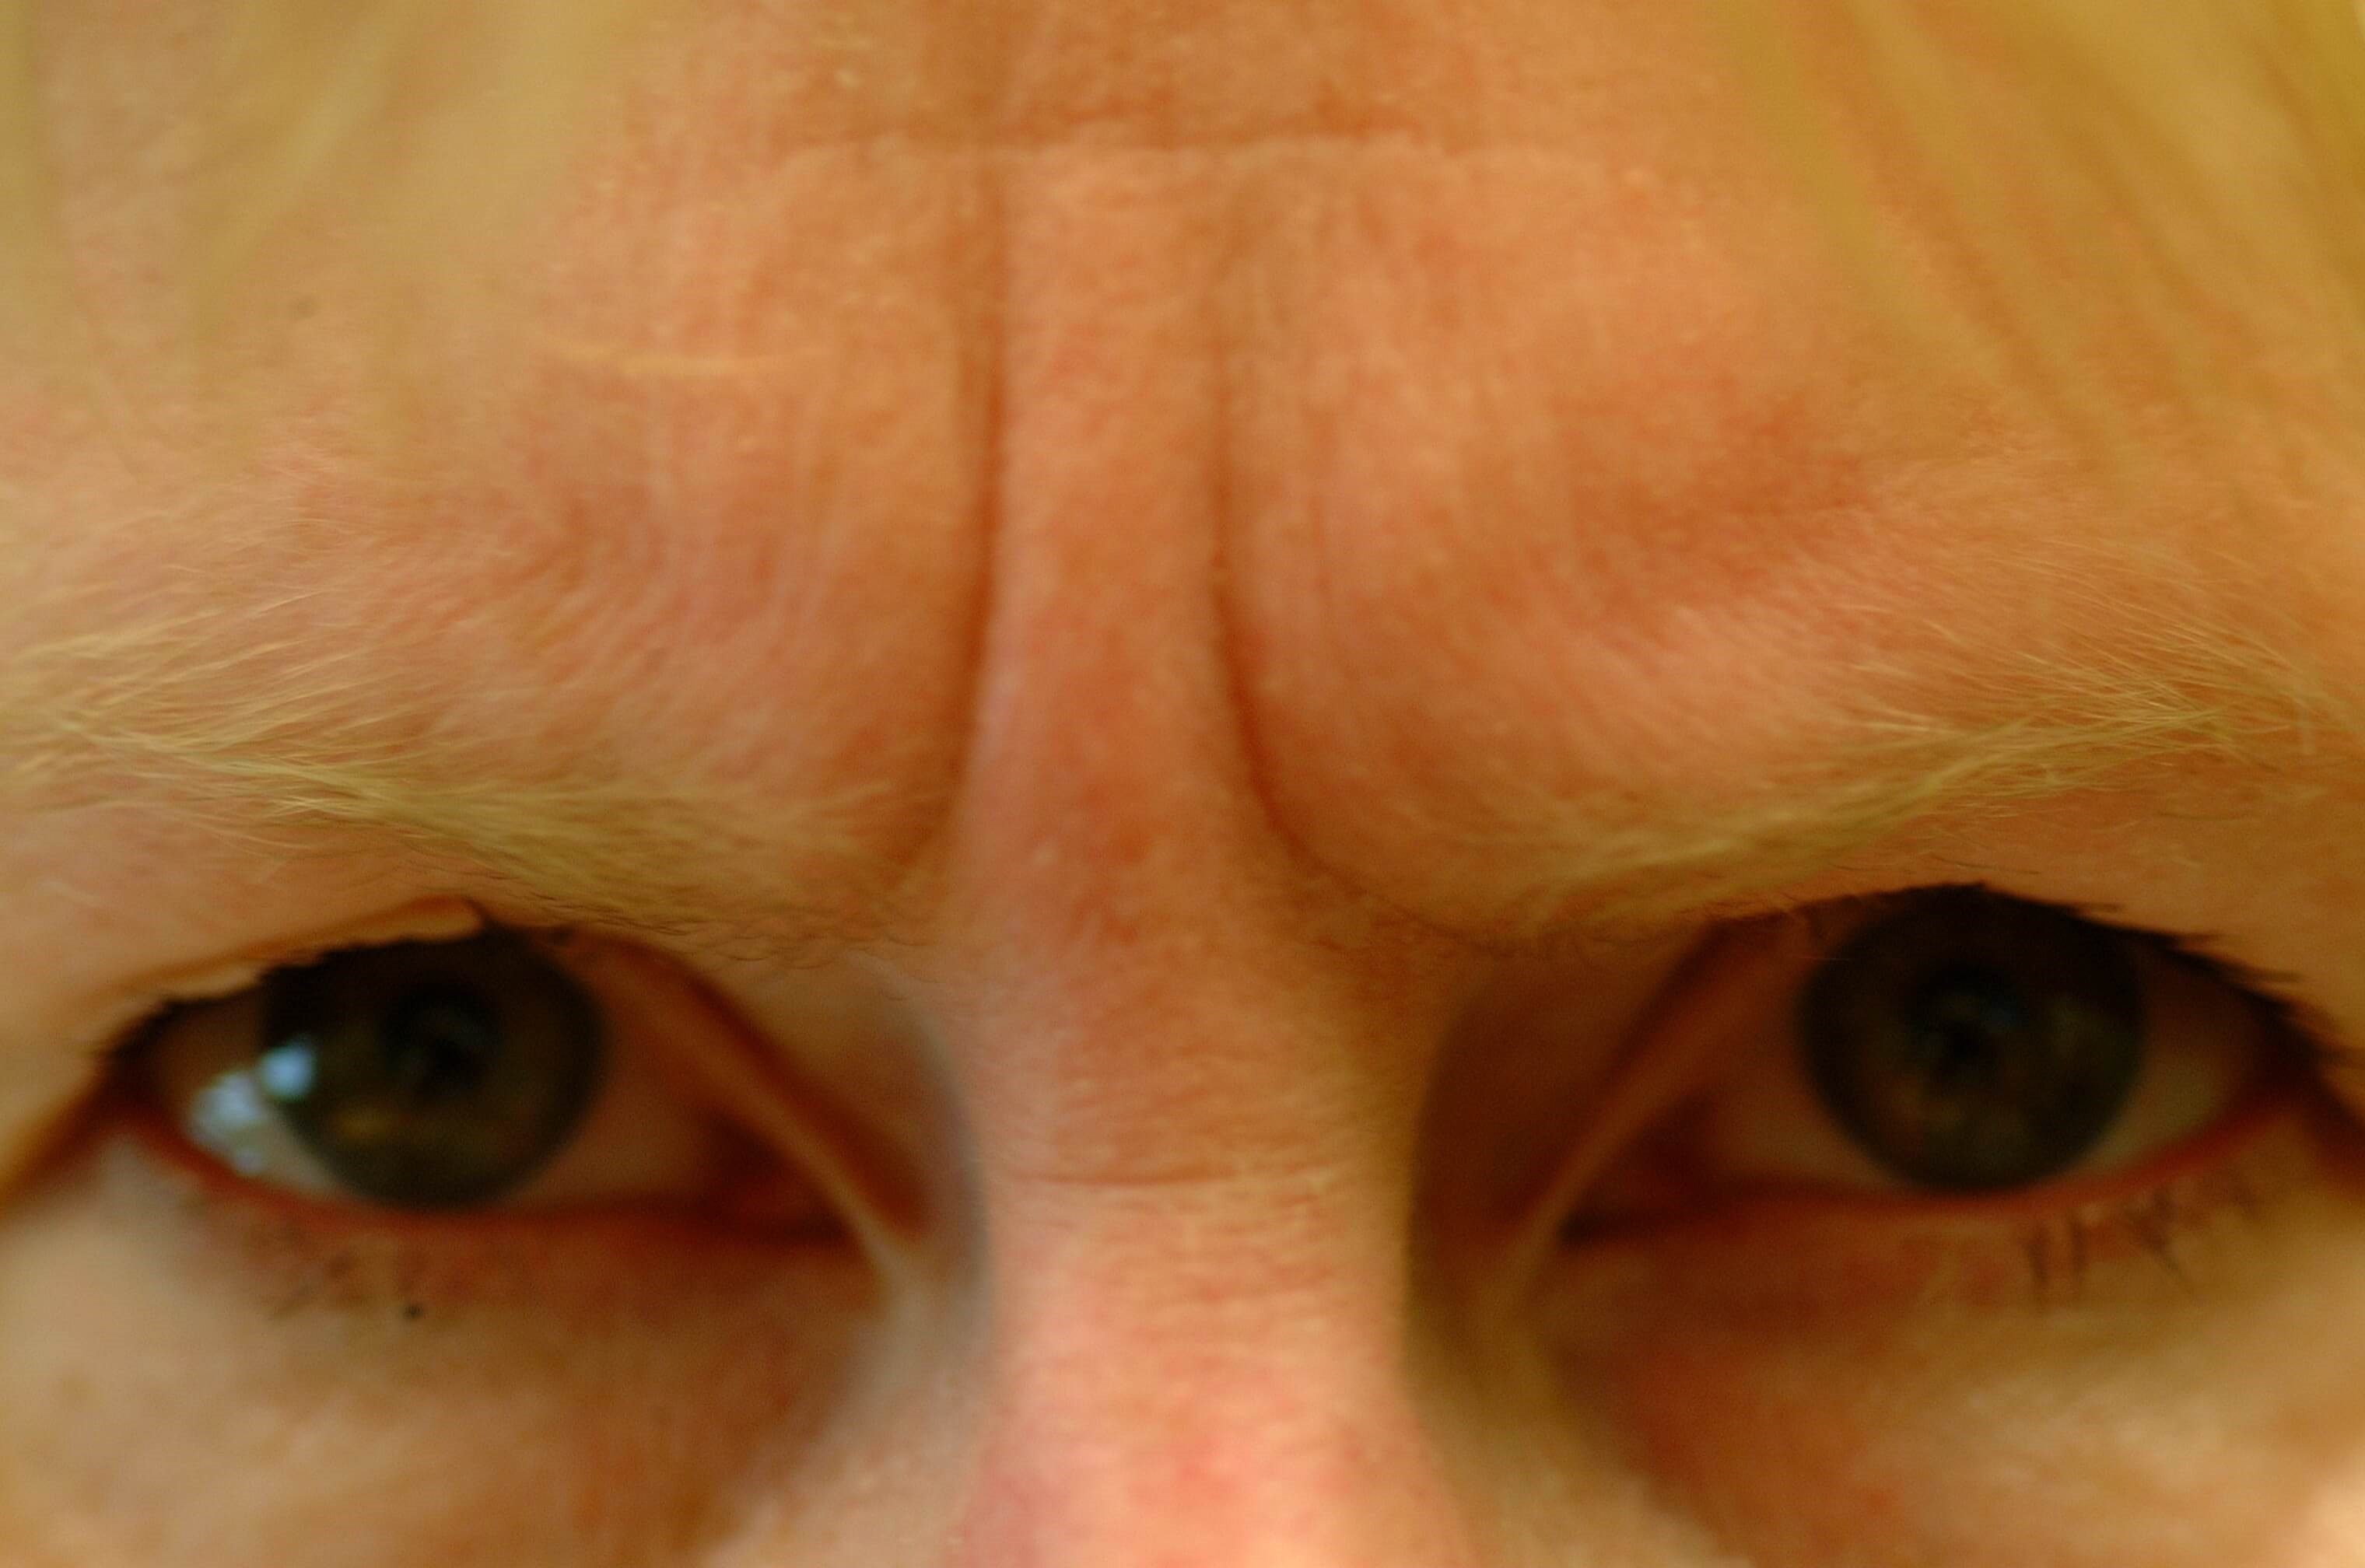 Dr. Bunkis Brow Lift OCPS Before